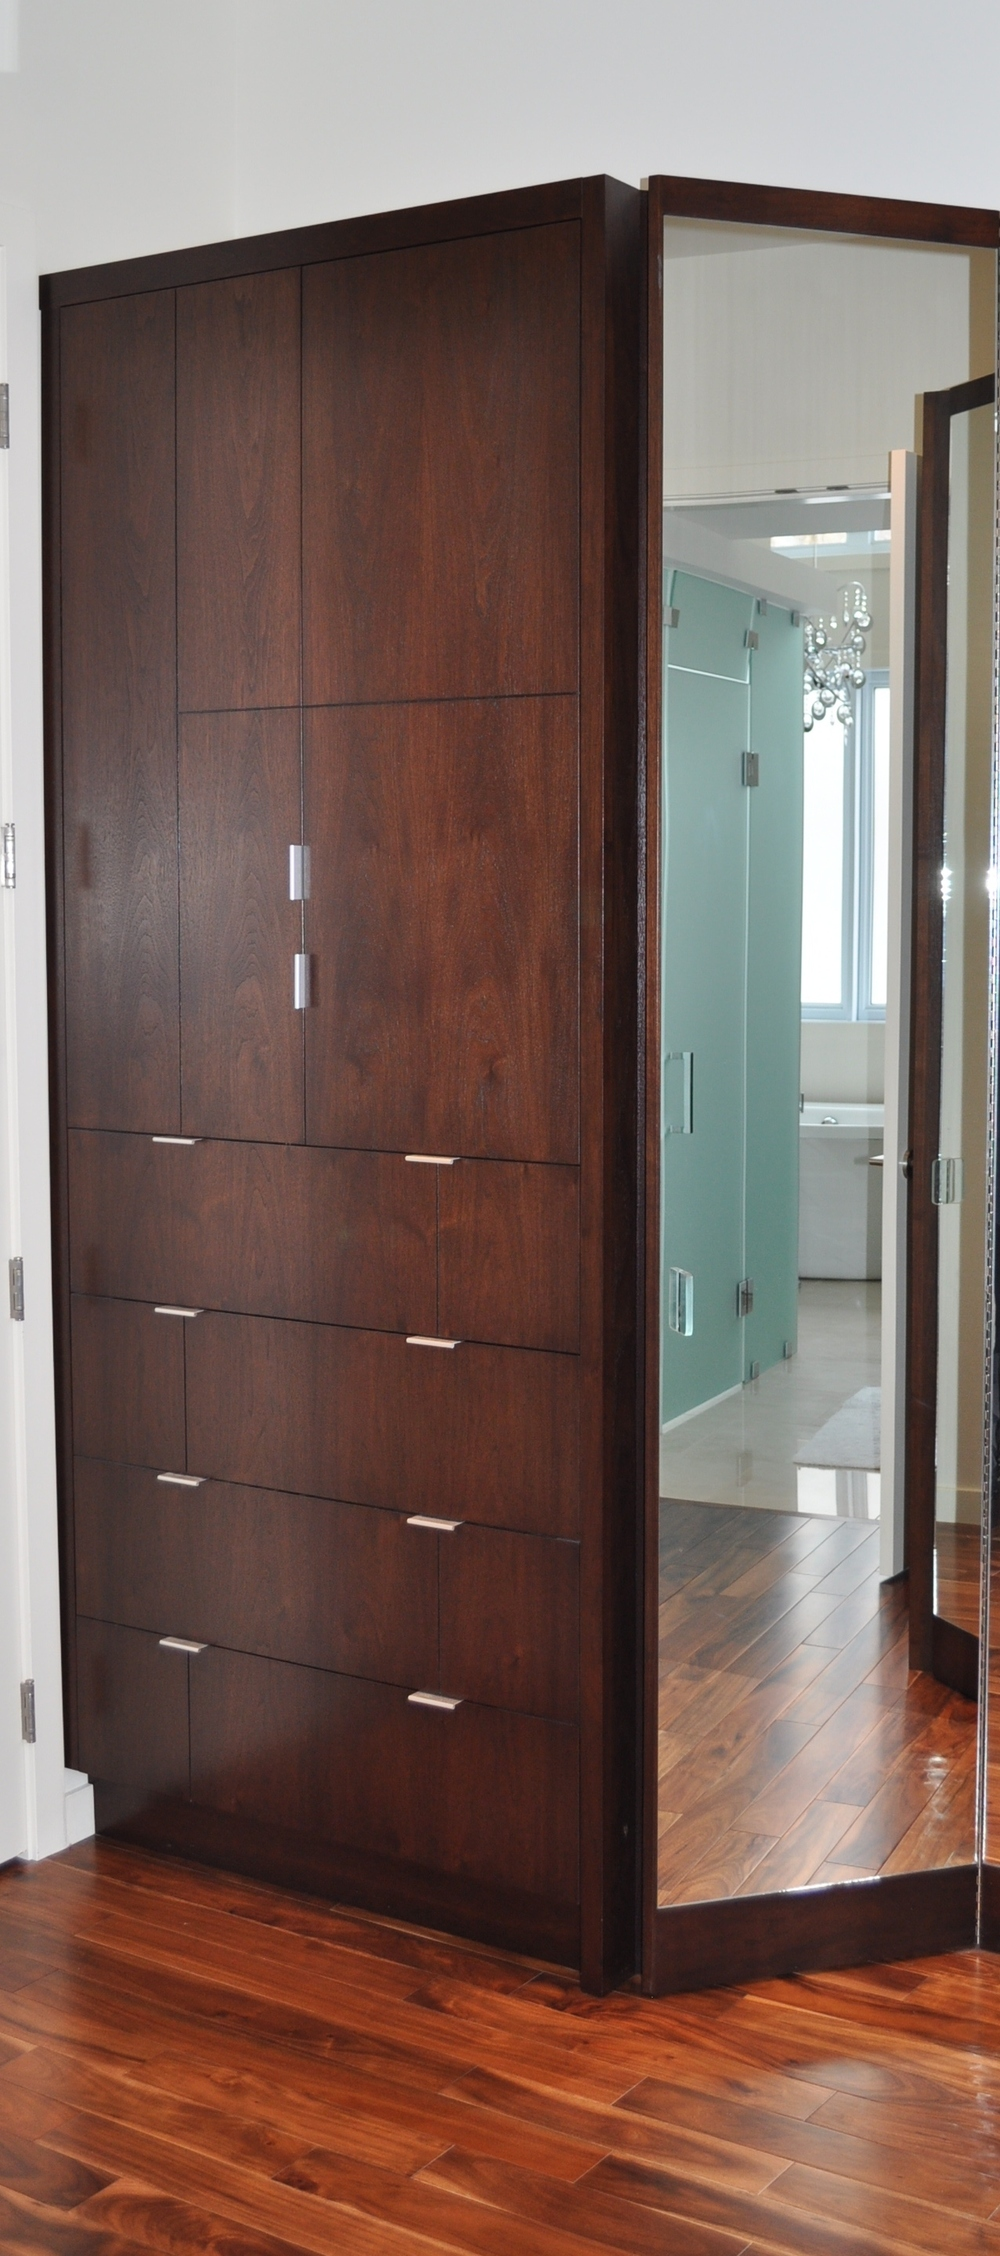 custom-walnut-bedroom-closet-cabinetry.JPG